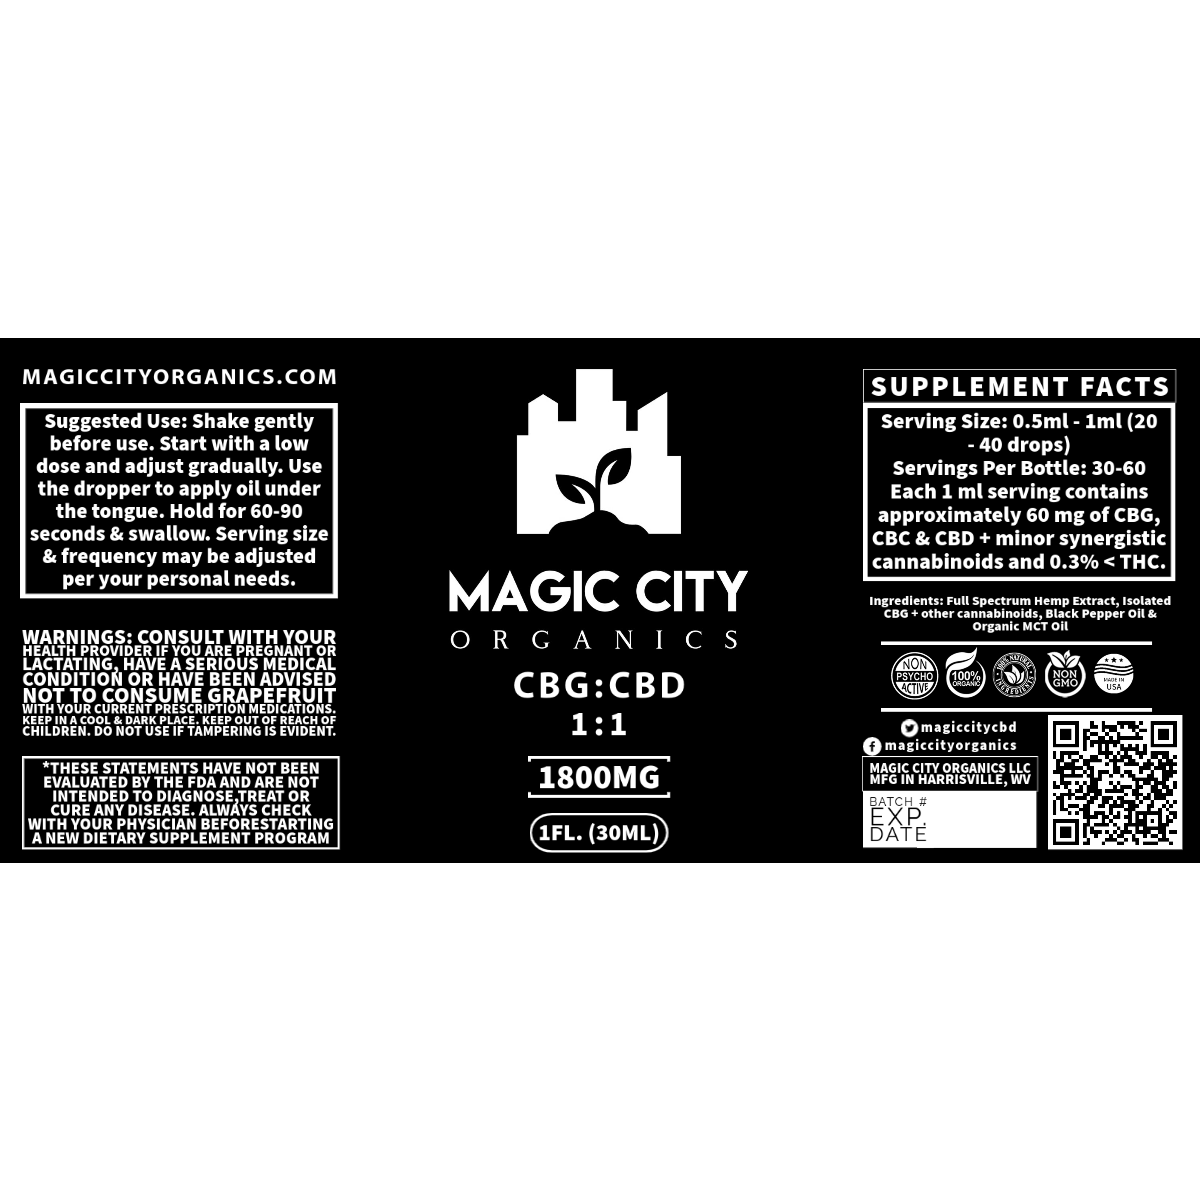 Magic City Organics CBG:CBD 1800MG || 1:1 Blend